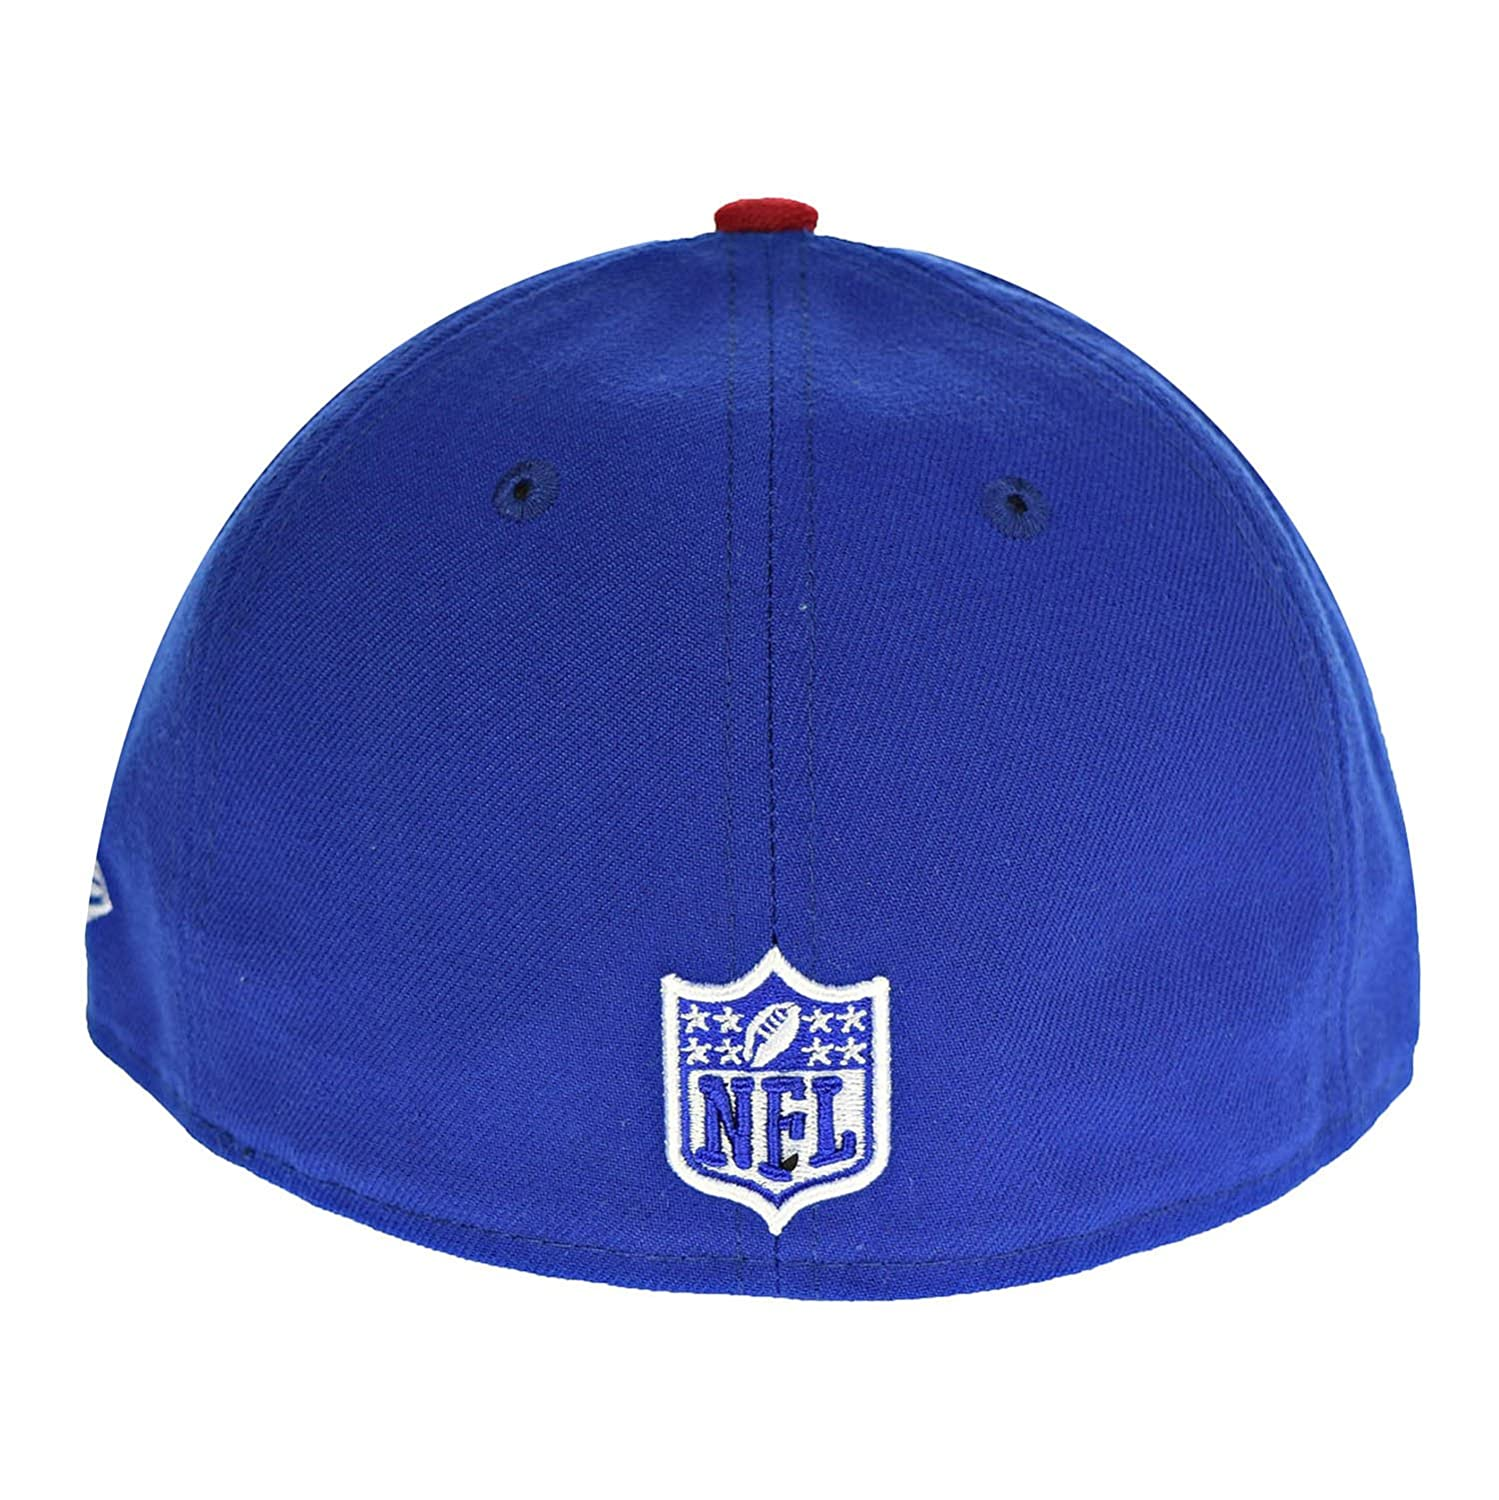 472bb9ad86d73b New Era New York Giants NFL 59Fifty Men's Fitted Hat Cap Blue/Red/White  70343682 (Size 7) at Amazon Men's Clothing store: